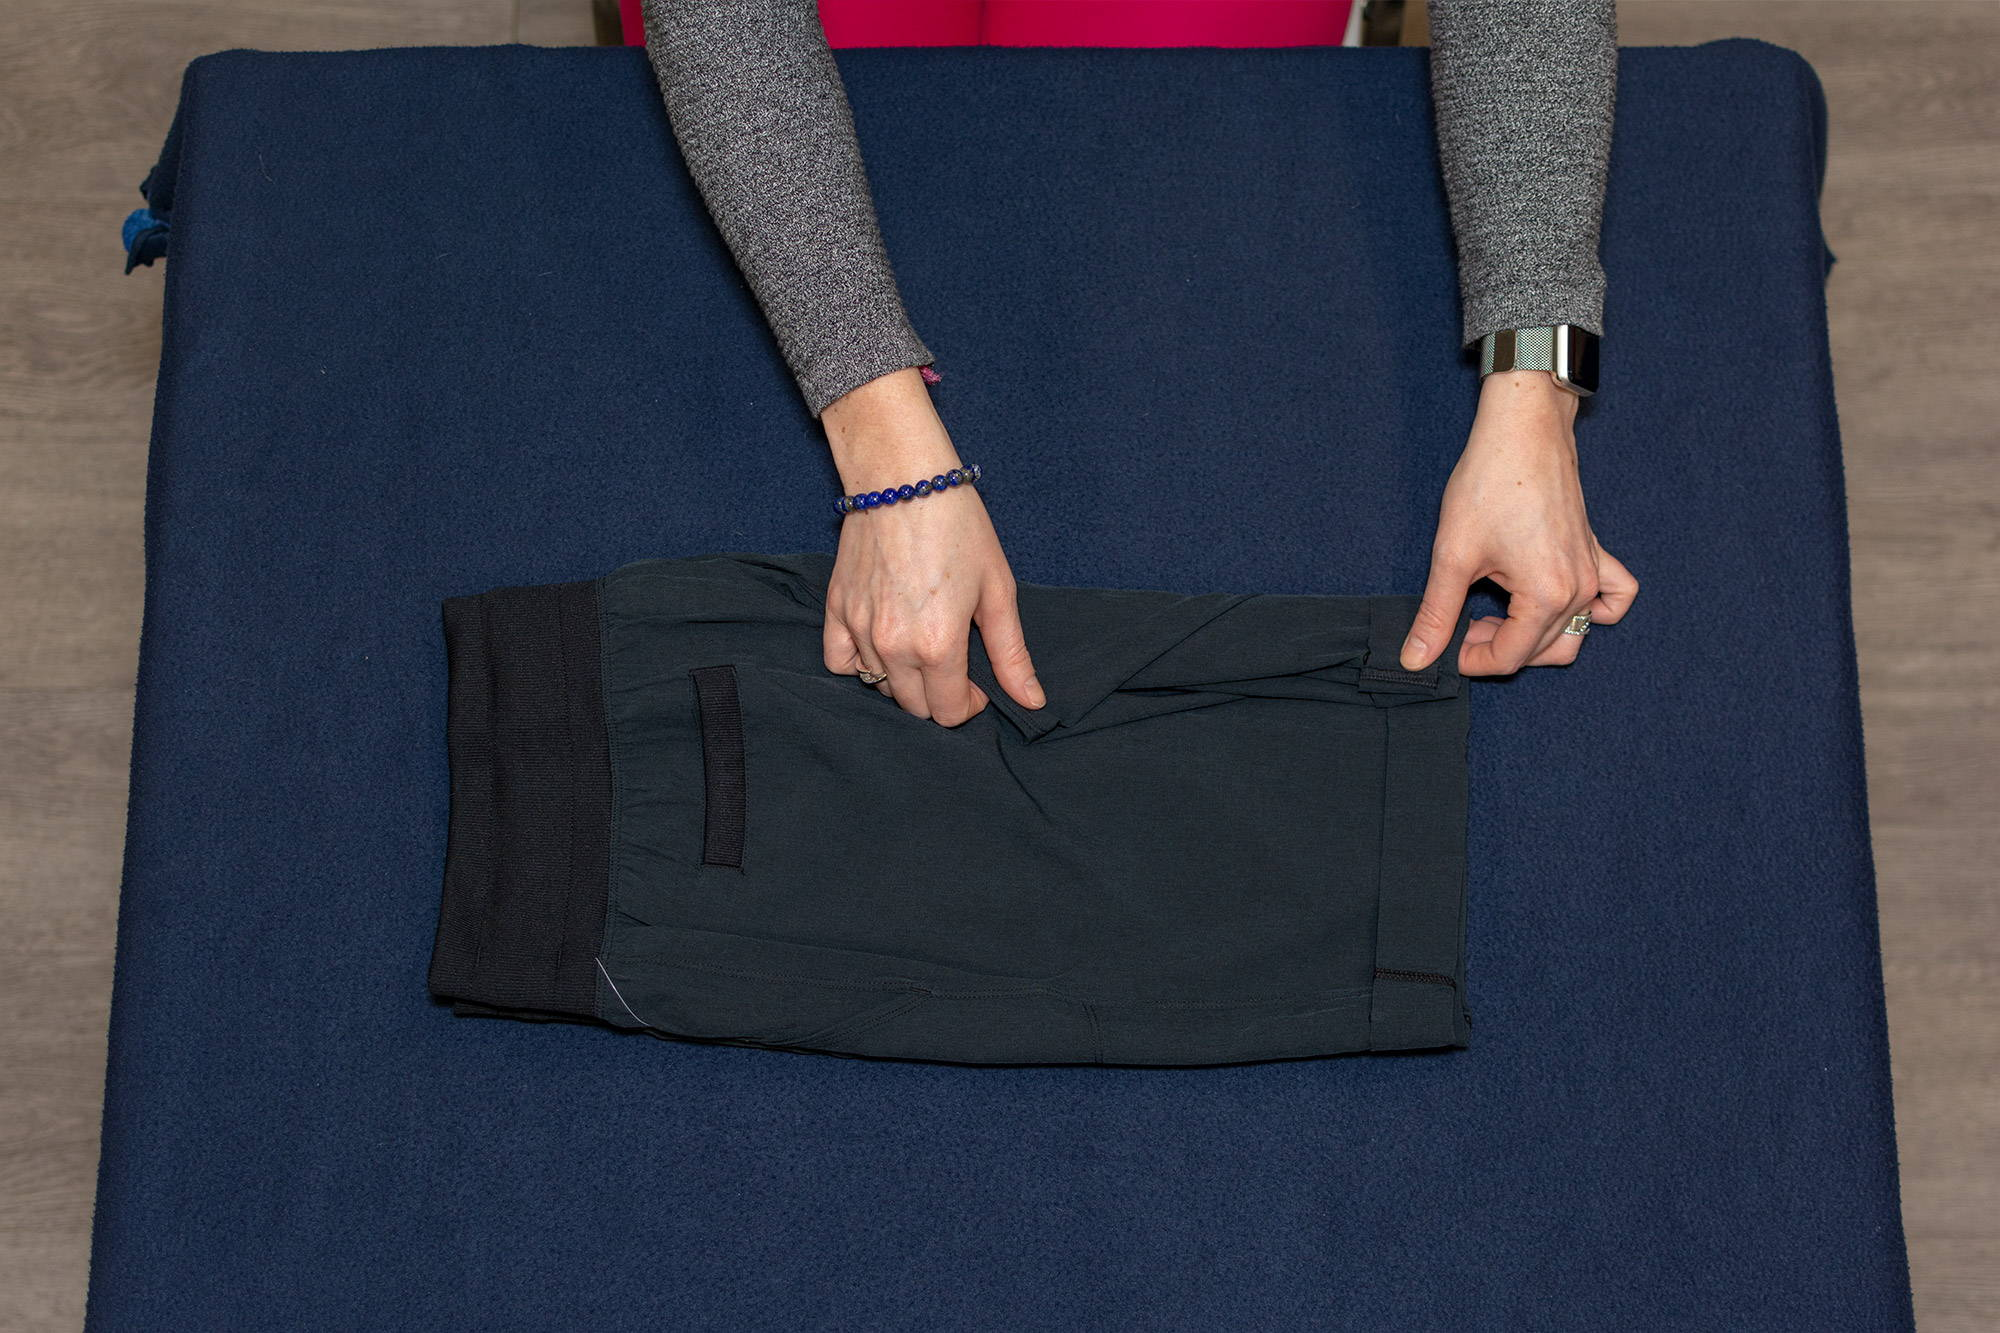 hands folding long shorts